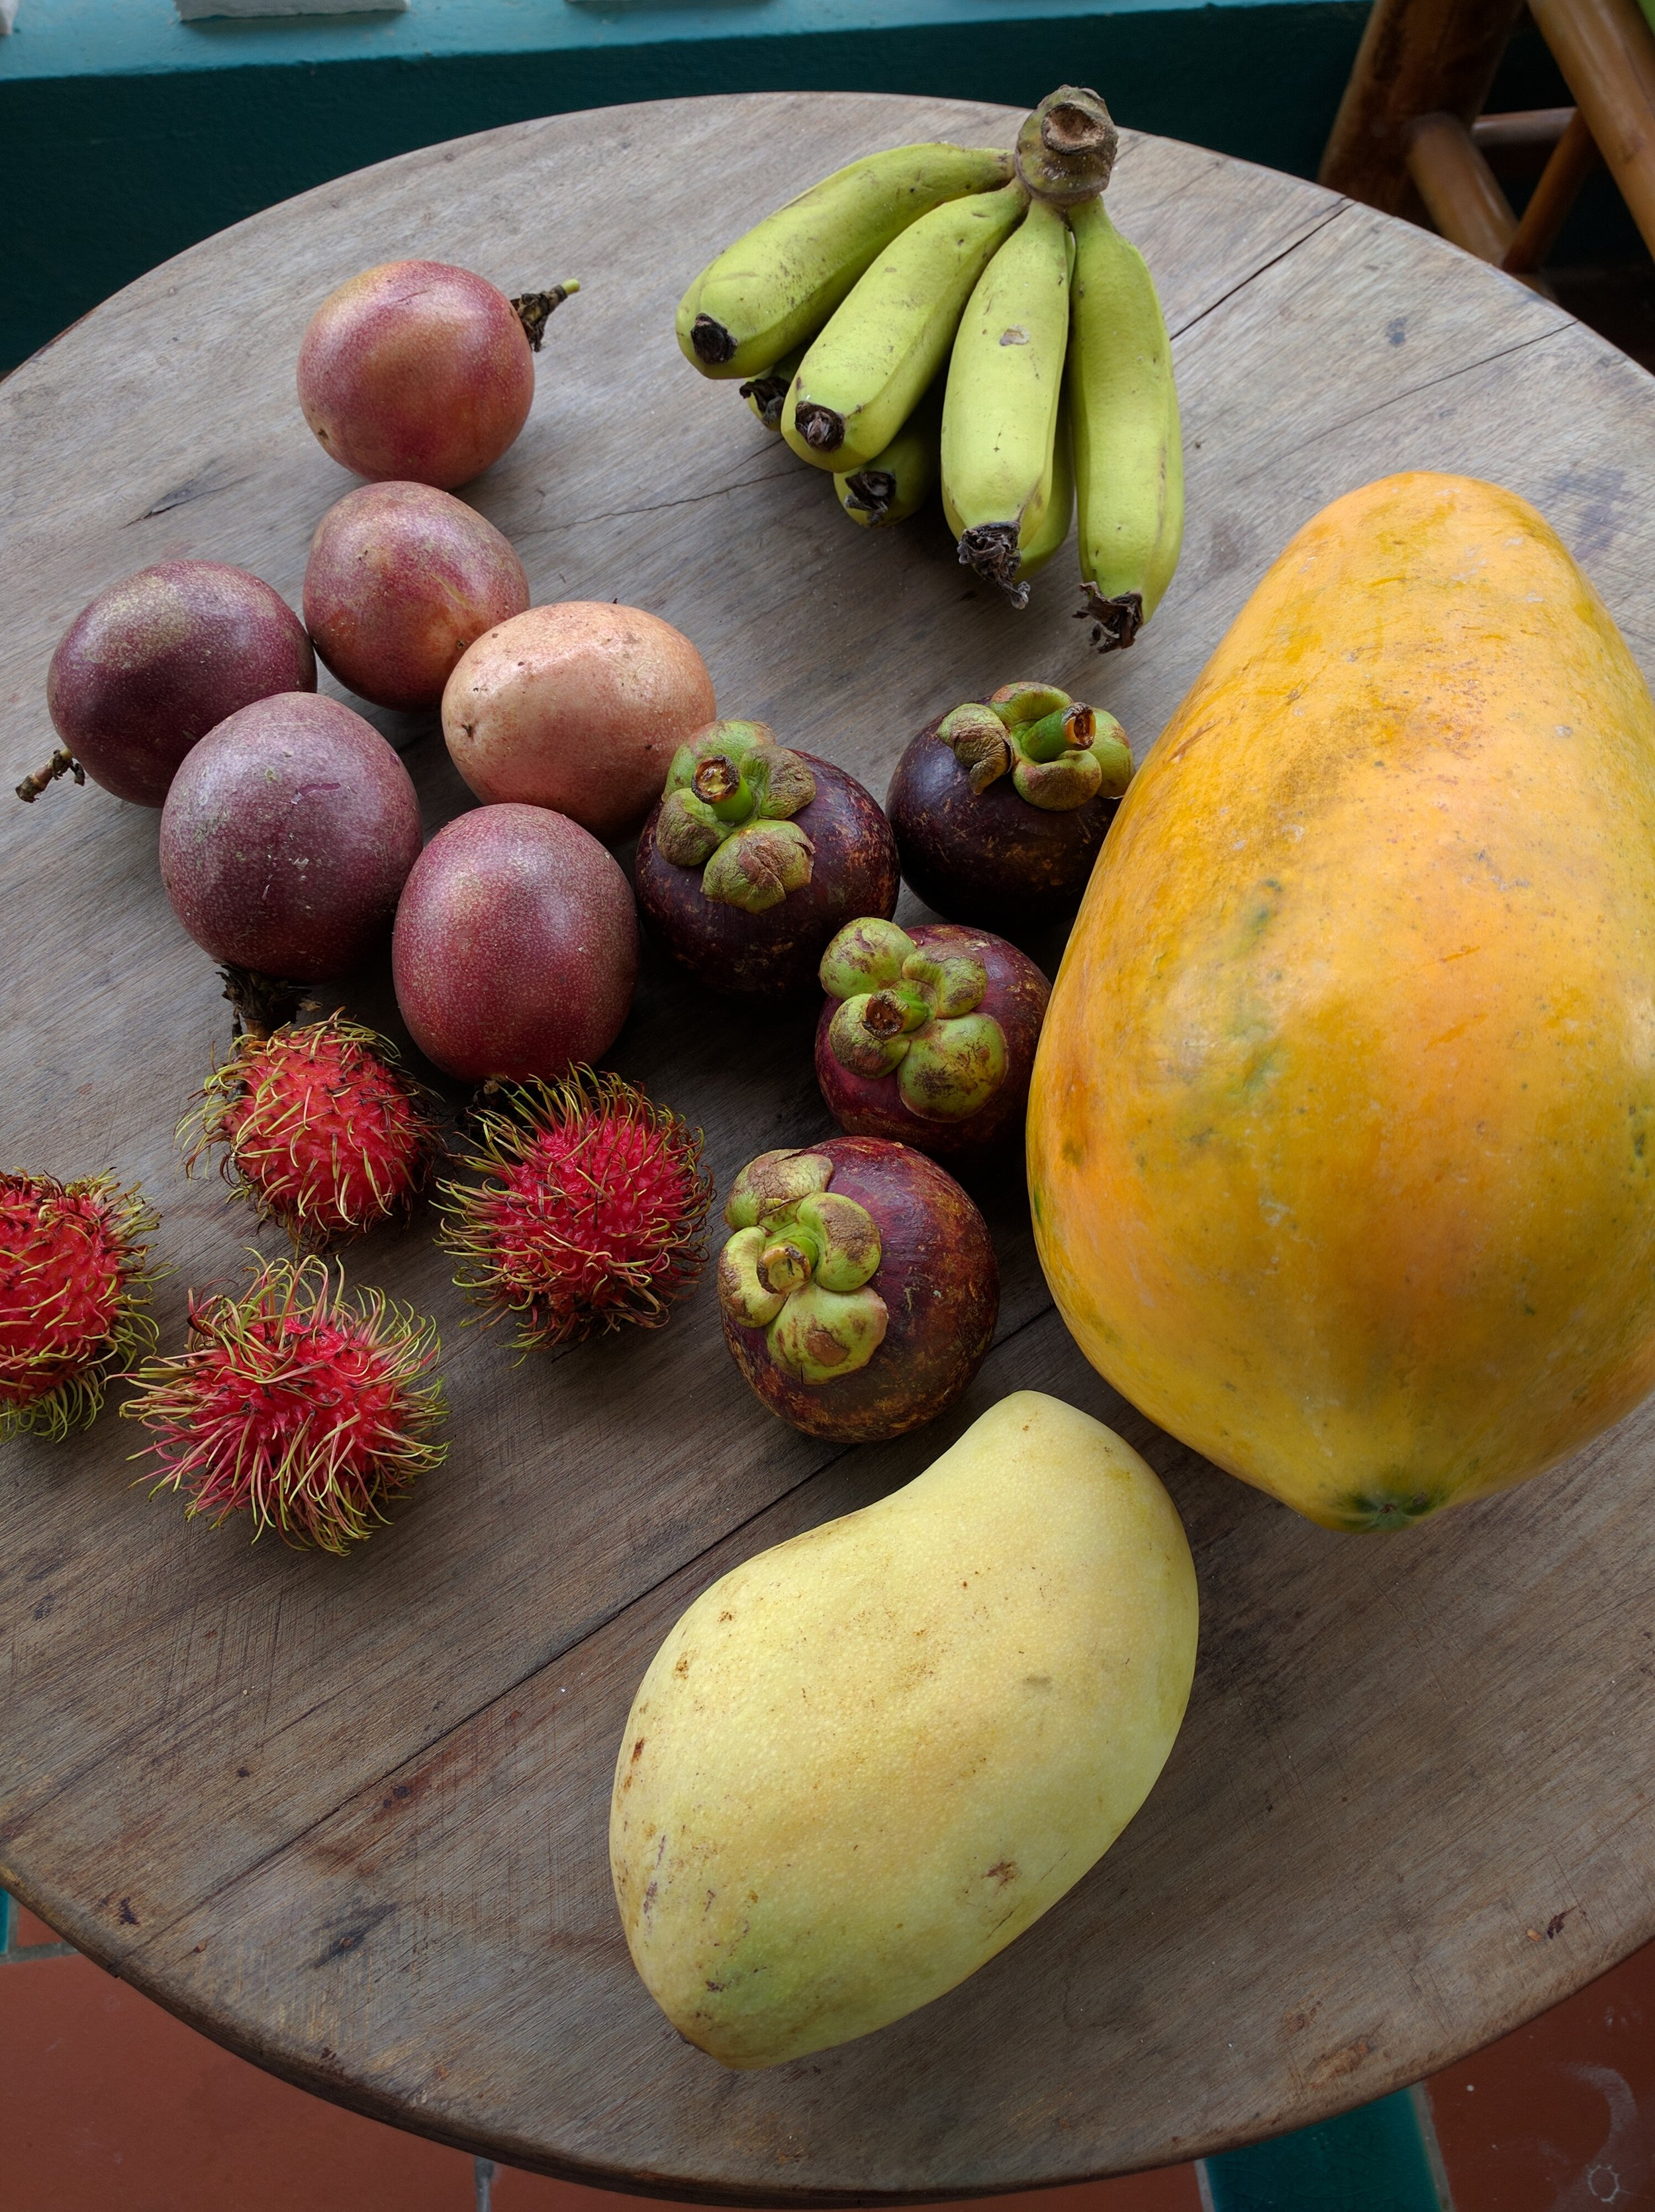 Our assortment of fruit from the An Bang food market